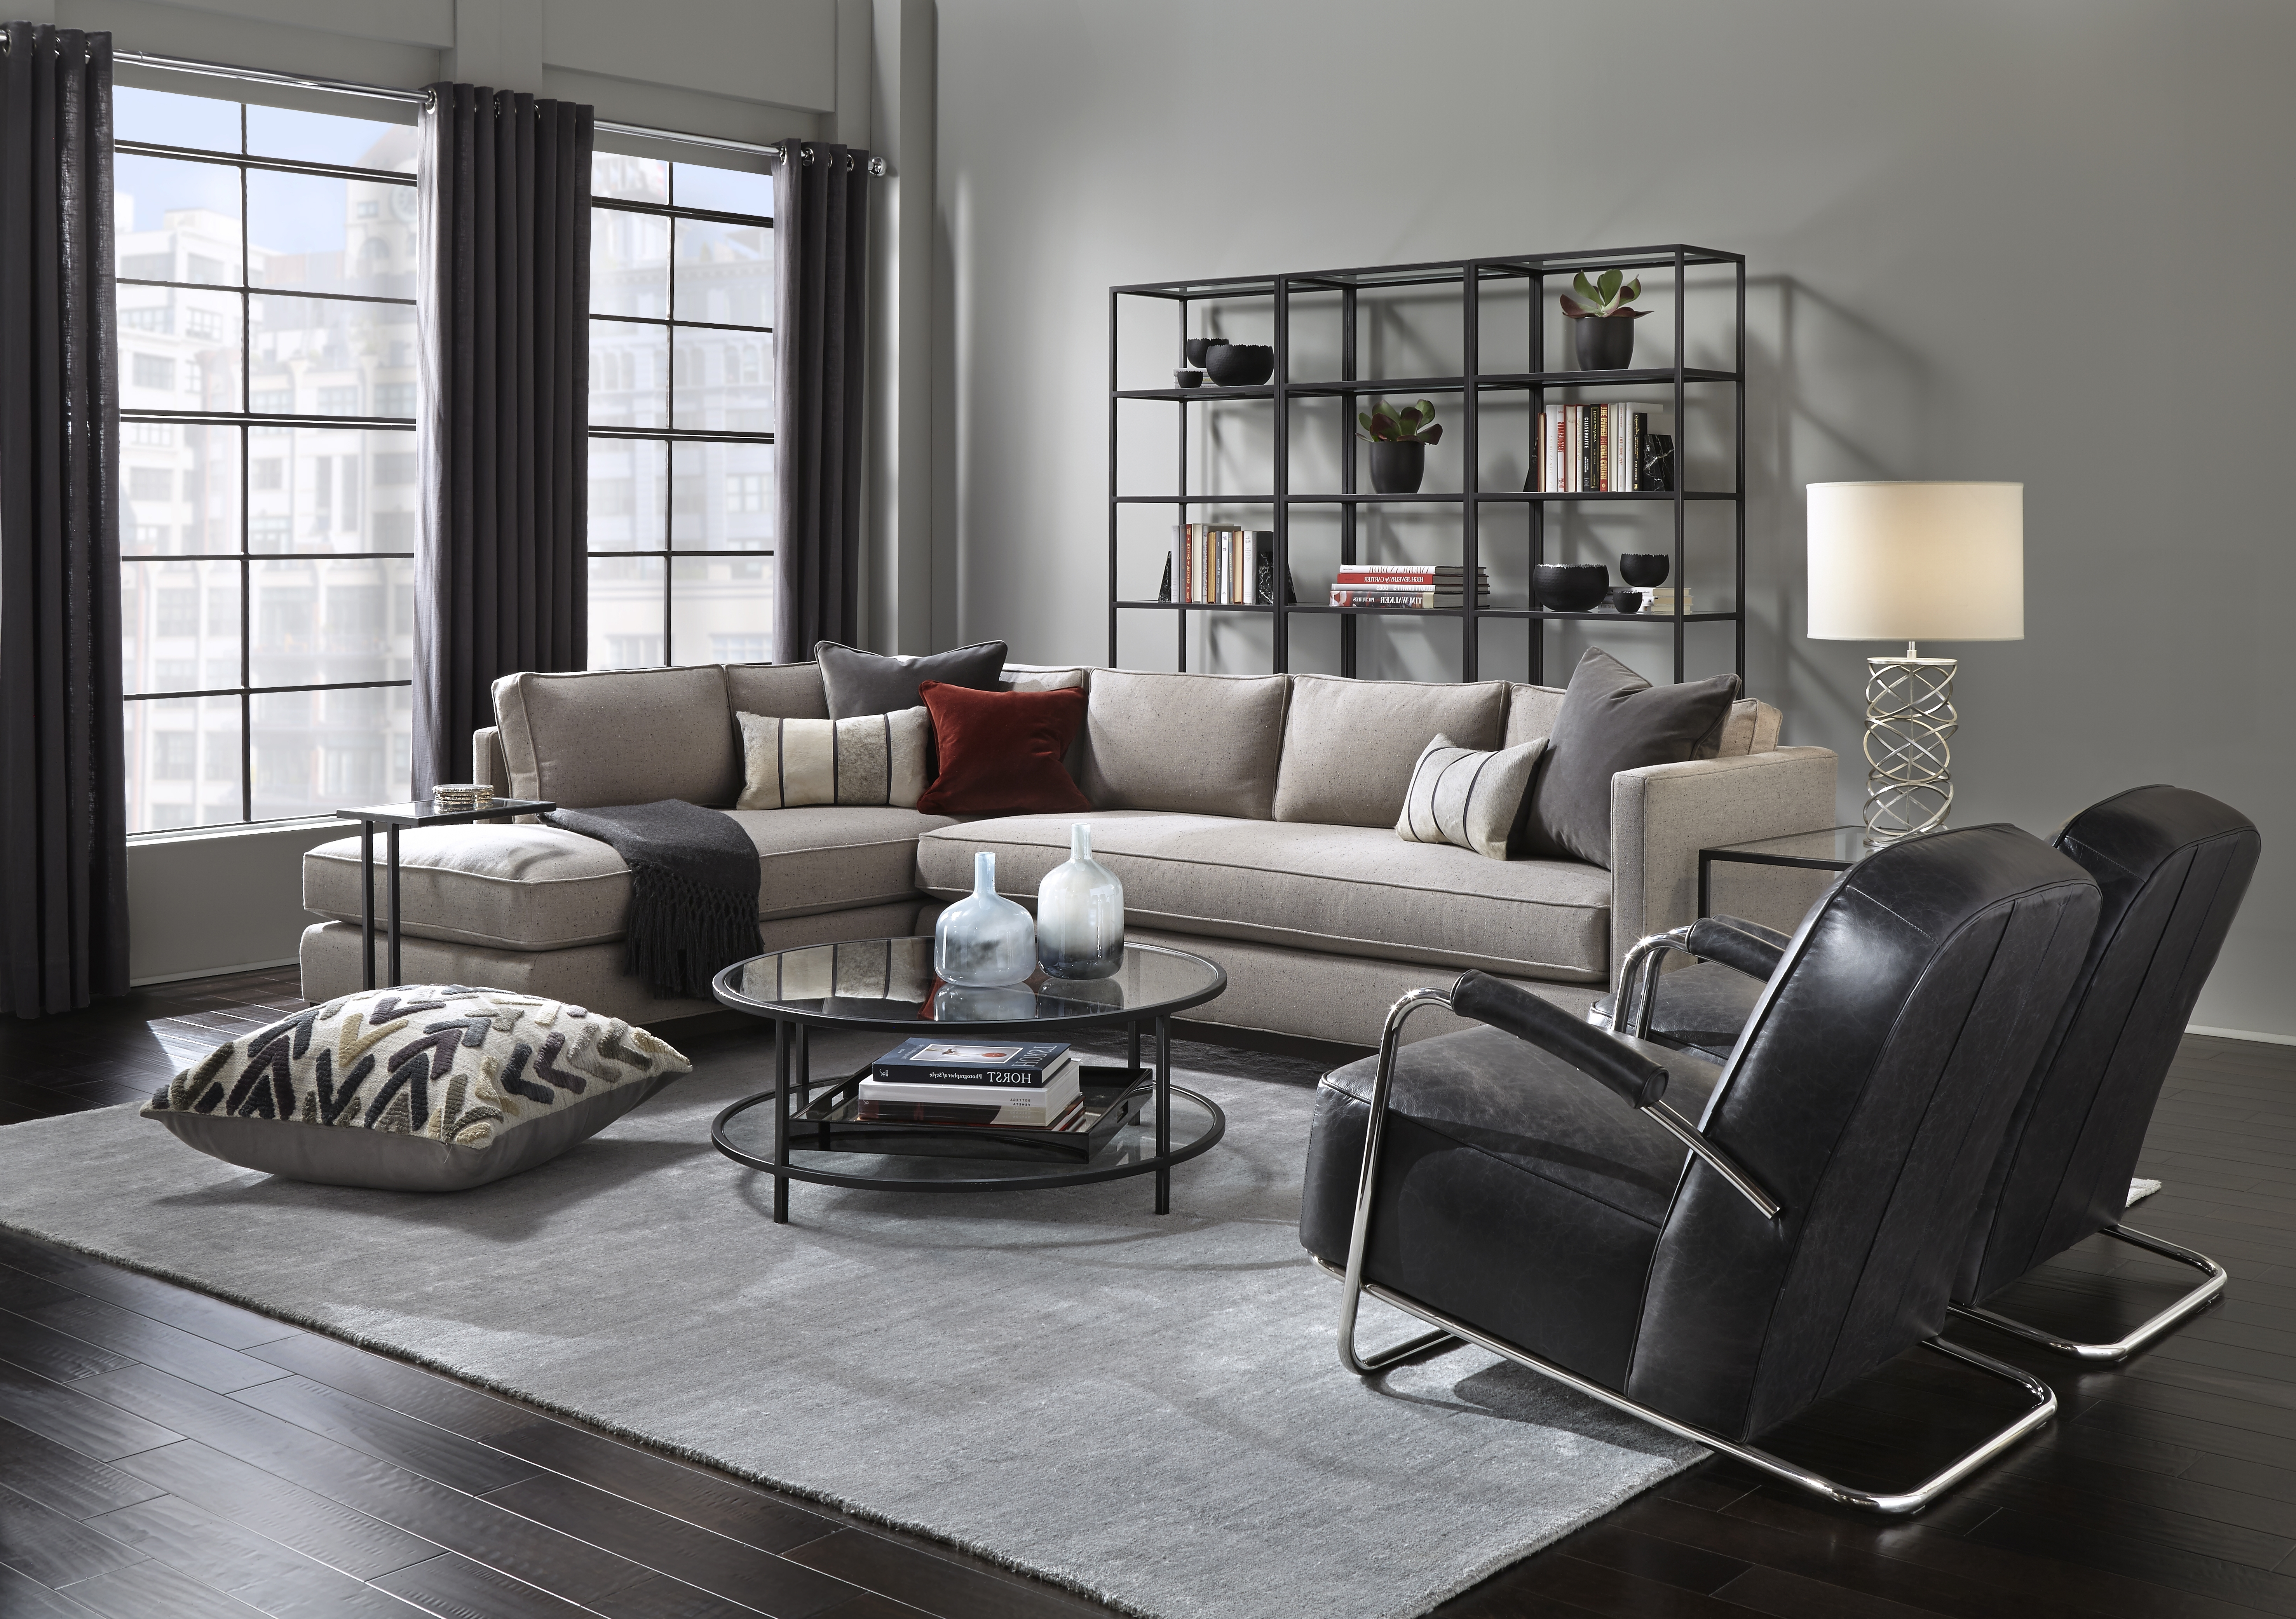 Trendy Restoration Hardware Sectional Sofas Within 12 Designer Picked Sofas For Every Budget, And People With Pets (View 14 of 15)